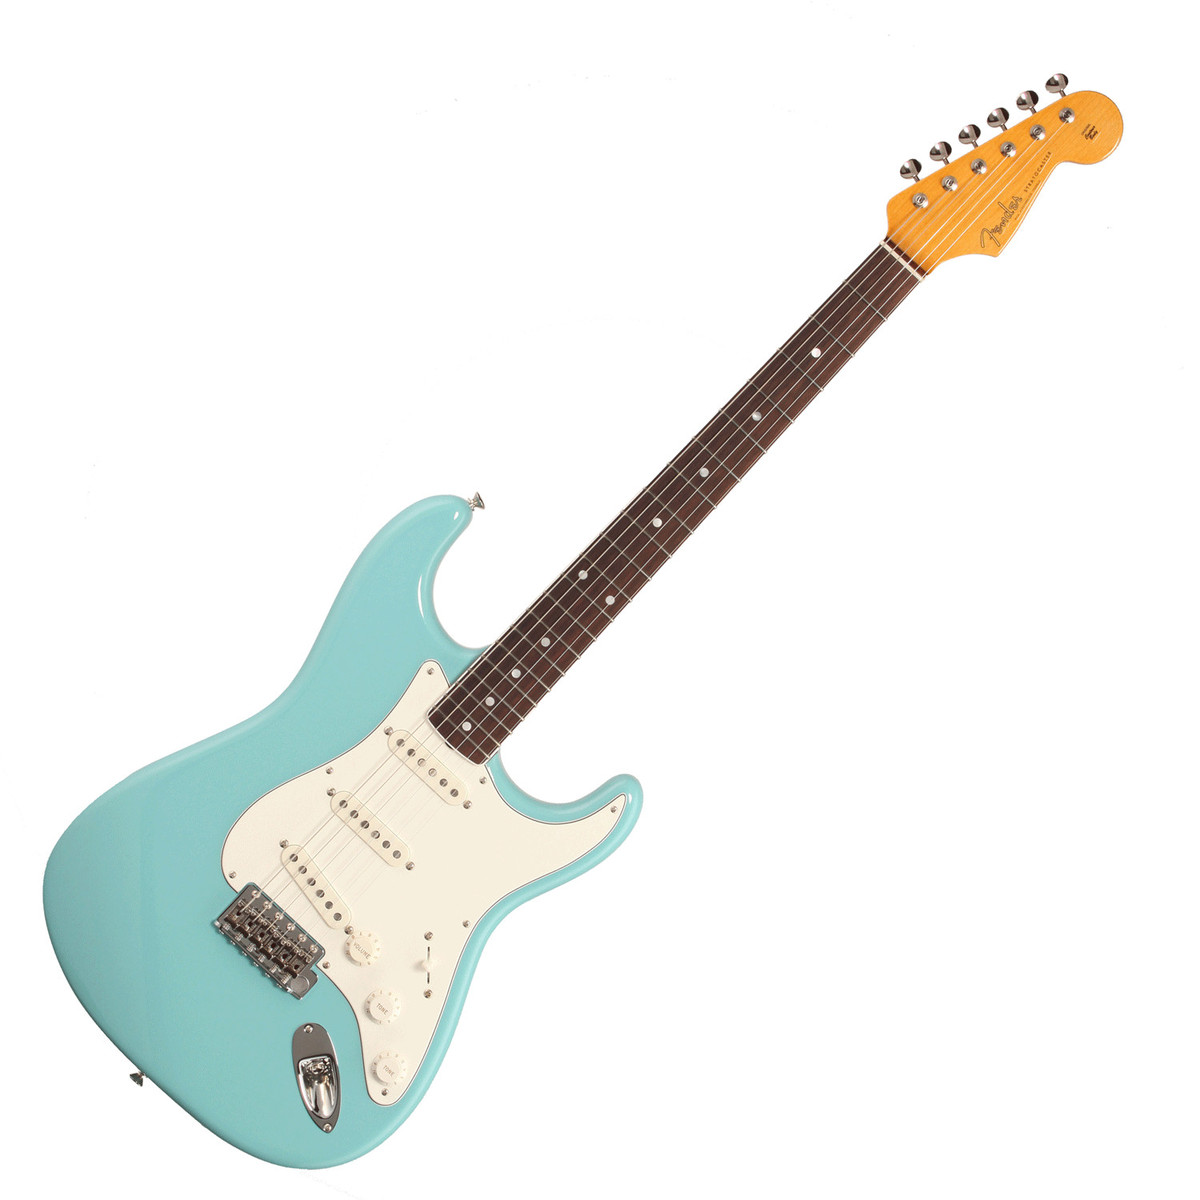 Cool Bass Pickup Configurations Huge 5 Way Import Switch Wiring Round Installing A Remote Start Bulldog Car Alarms Youthful Ibanez Hsh BrownOne Humbucker One Volume Fender Eric Johnson Stratocaster Guitar, RW Tropical Turquoise At ..